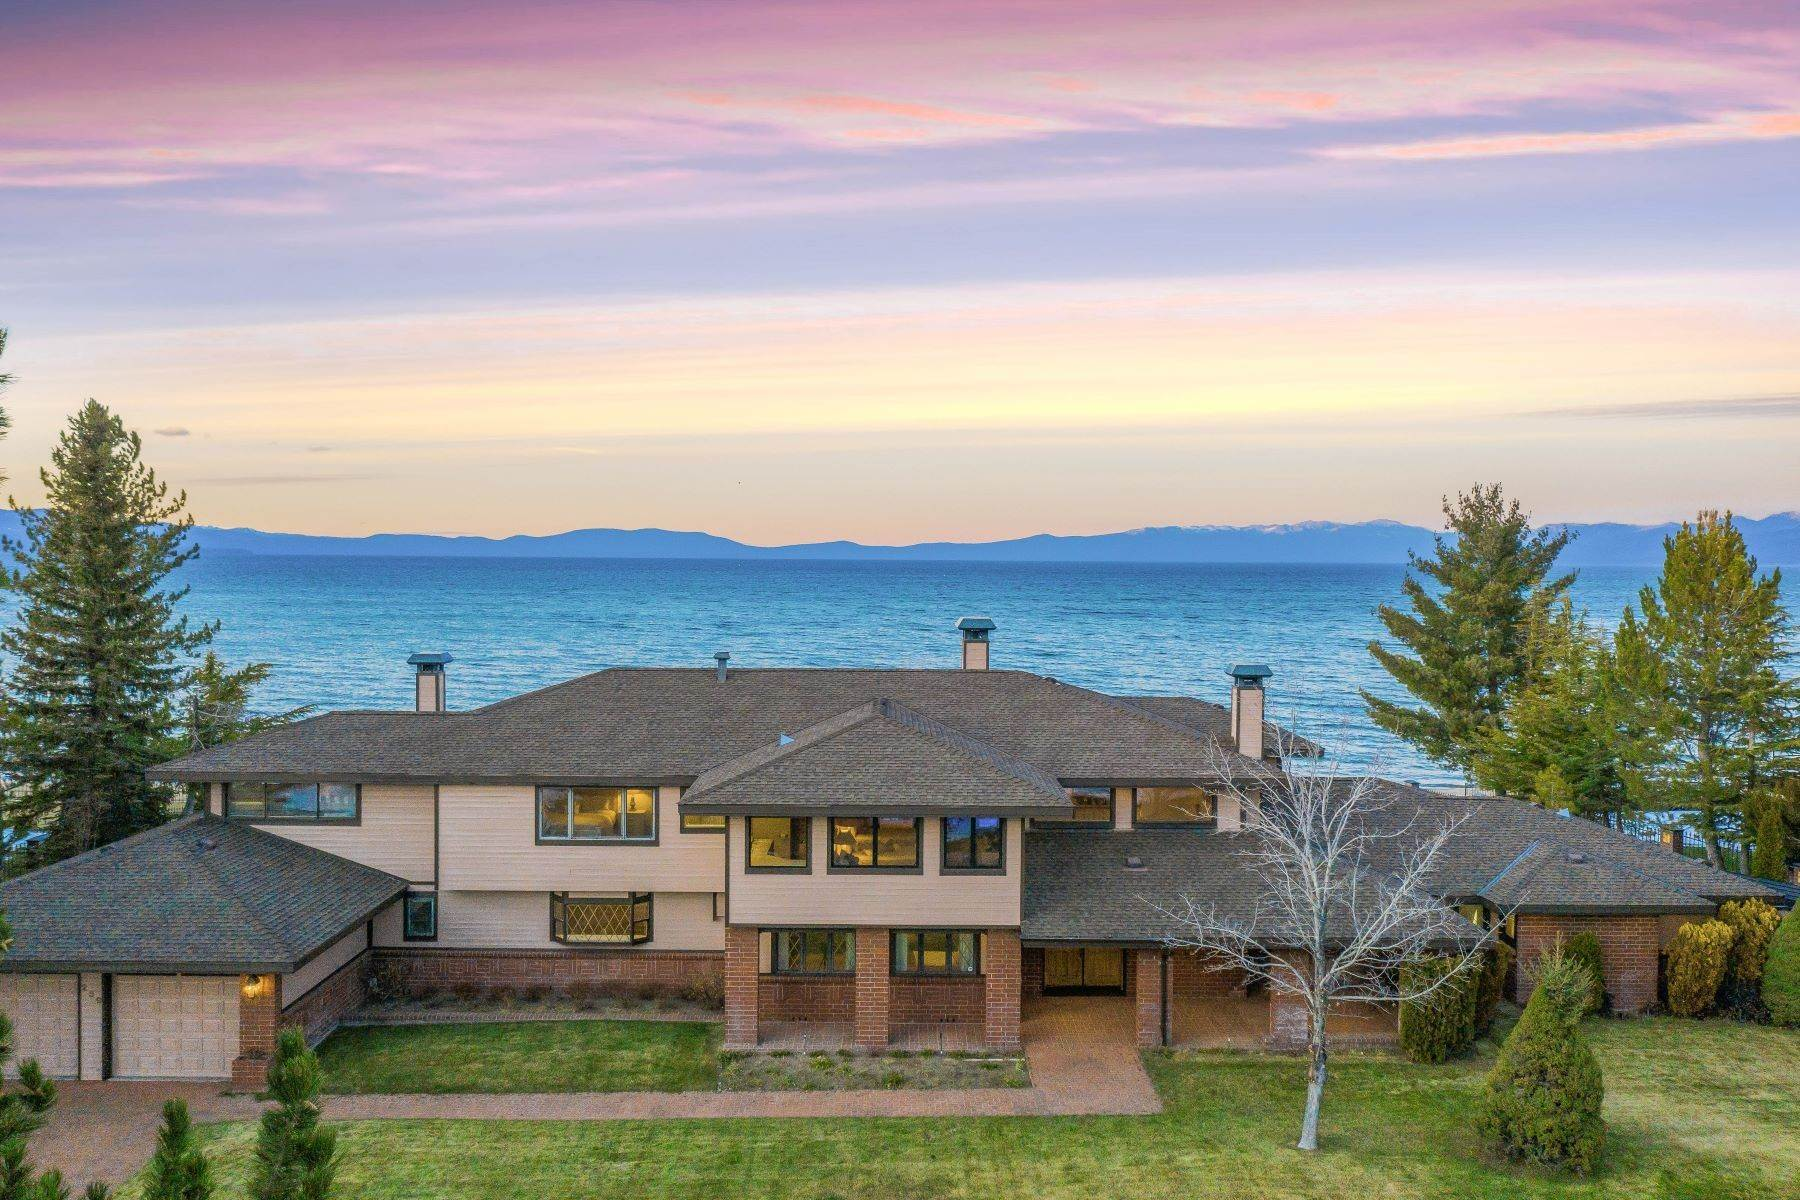 Single Family Homes for Active at Lake Tahoe Lakefront Estate 259 Beach Drive South Lake Tahoe, California 96150 United States